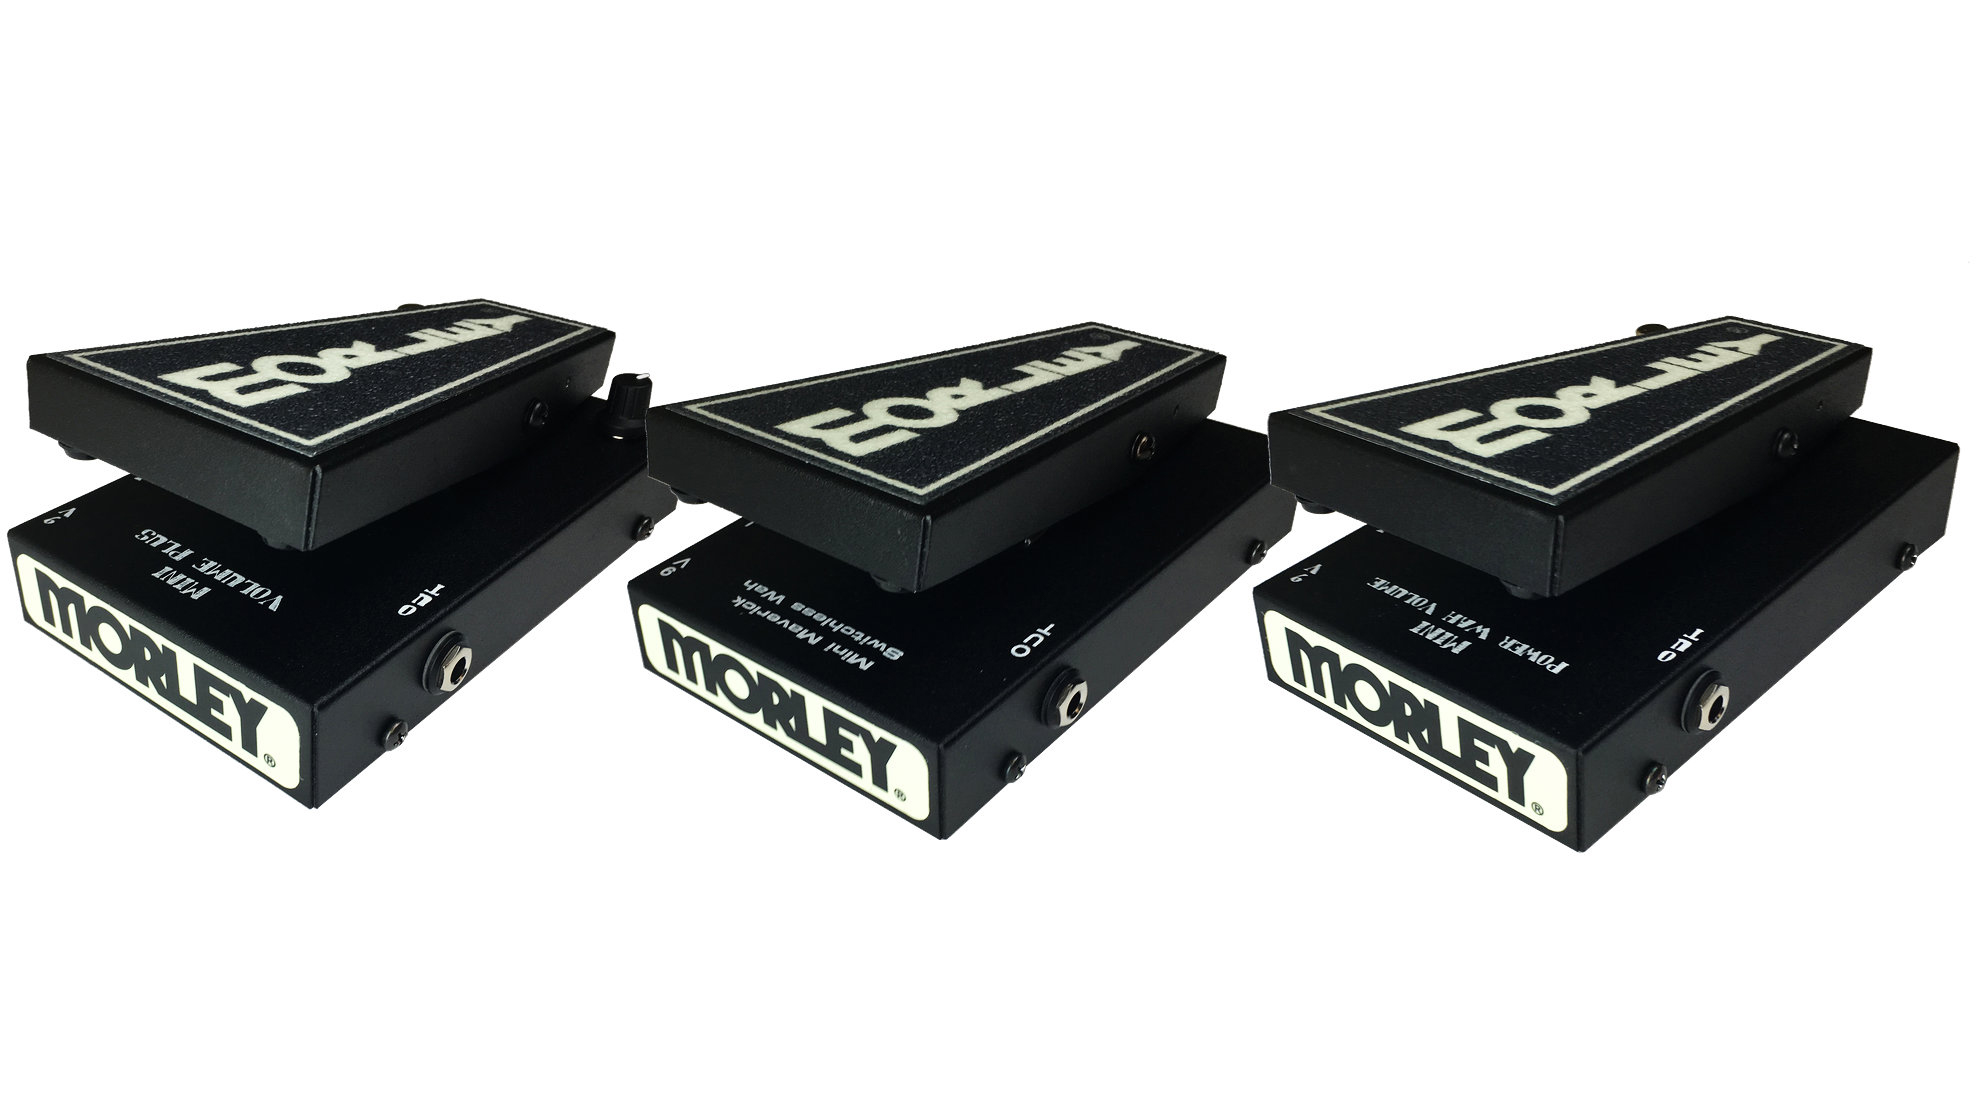 Morley introduces three new Mini pedals